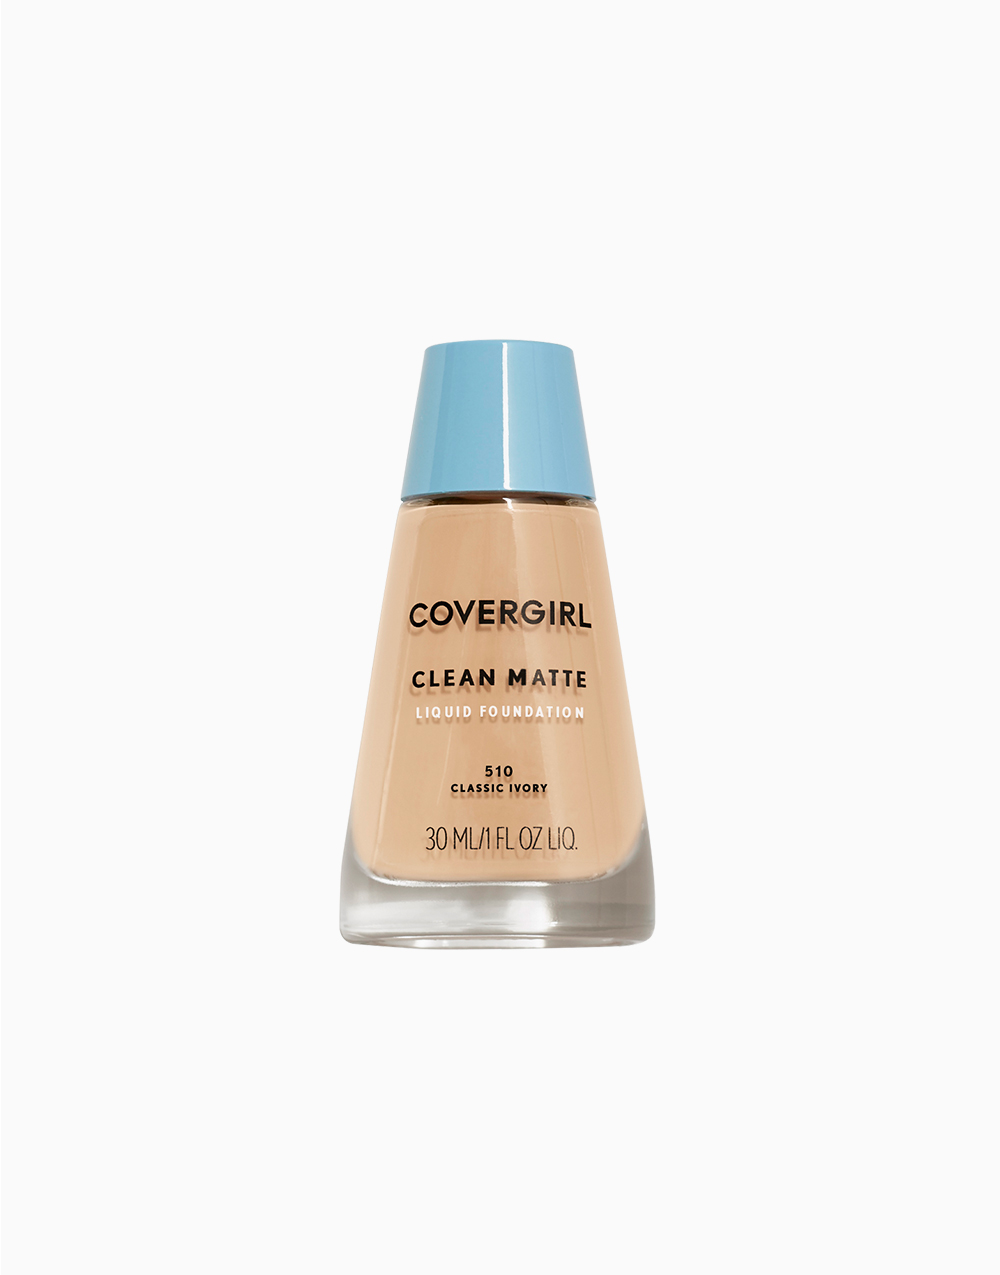 Clean Matte Liquid Foundation by CoverGirl | Classic Ivory